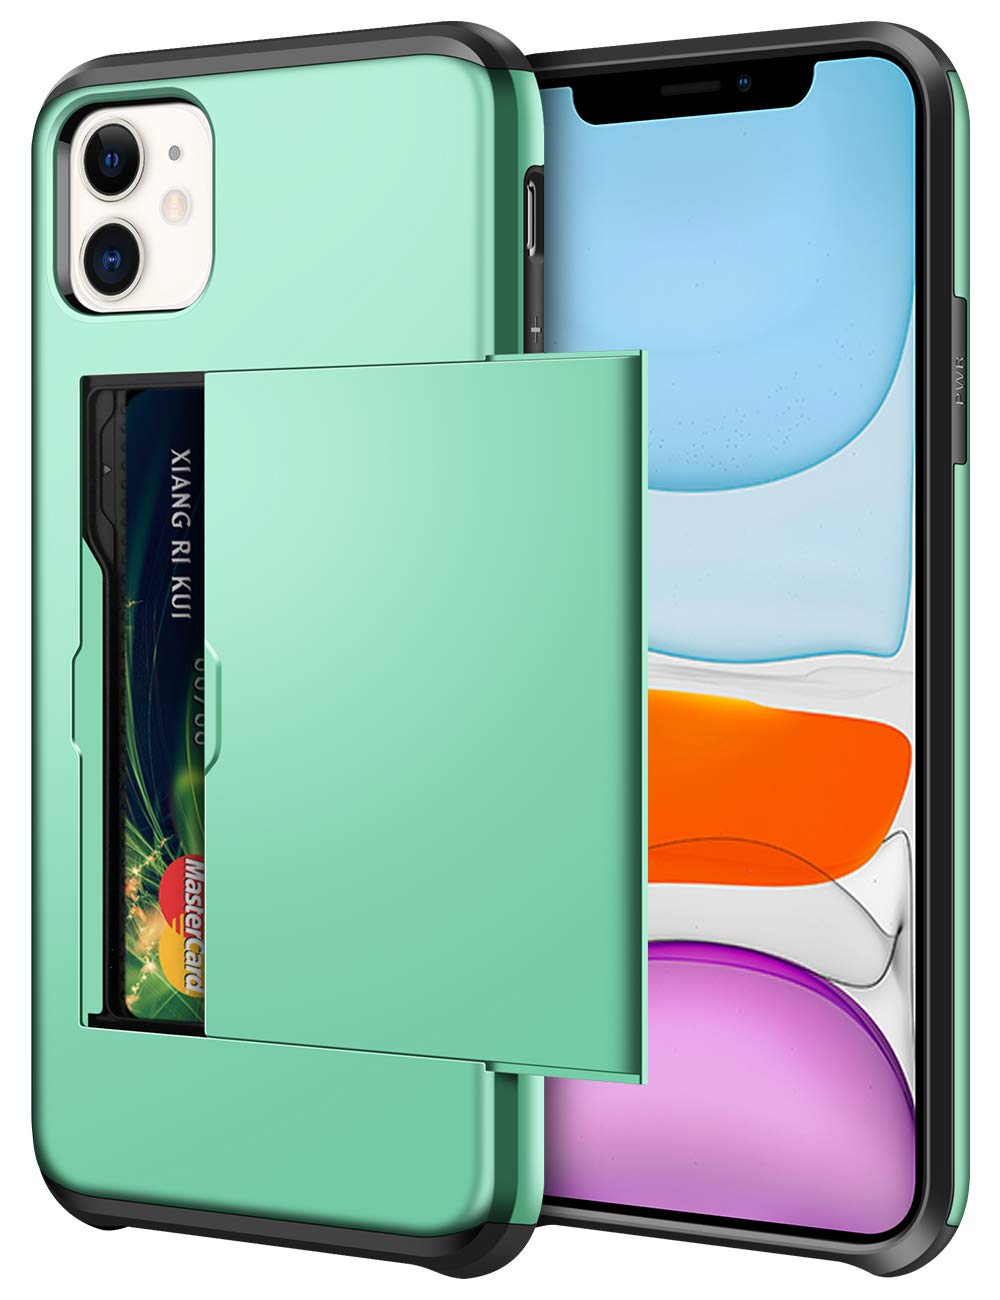 SAMONPOW Wallet Case for iPhone 11 Case with Card Holder Dual Layer Hybrid Shell Heavy Duty Protection Shockproof Anti Scratch Soft Rubber Bumper Cover Case for iPhone 11 6.1 inch Mint